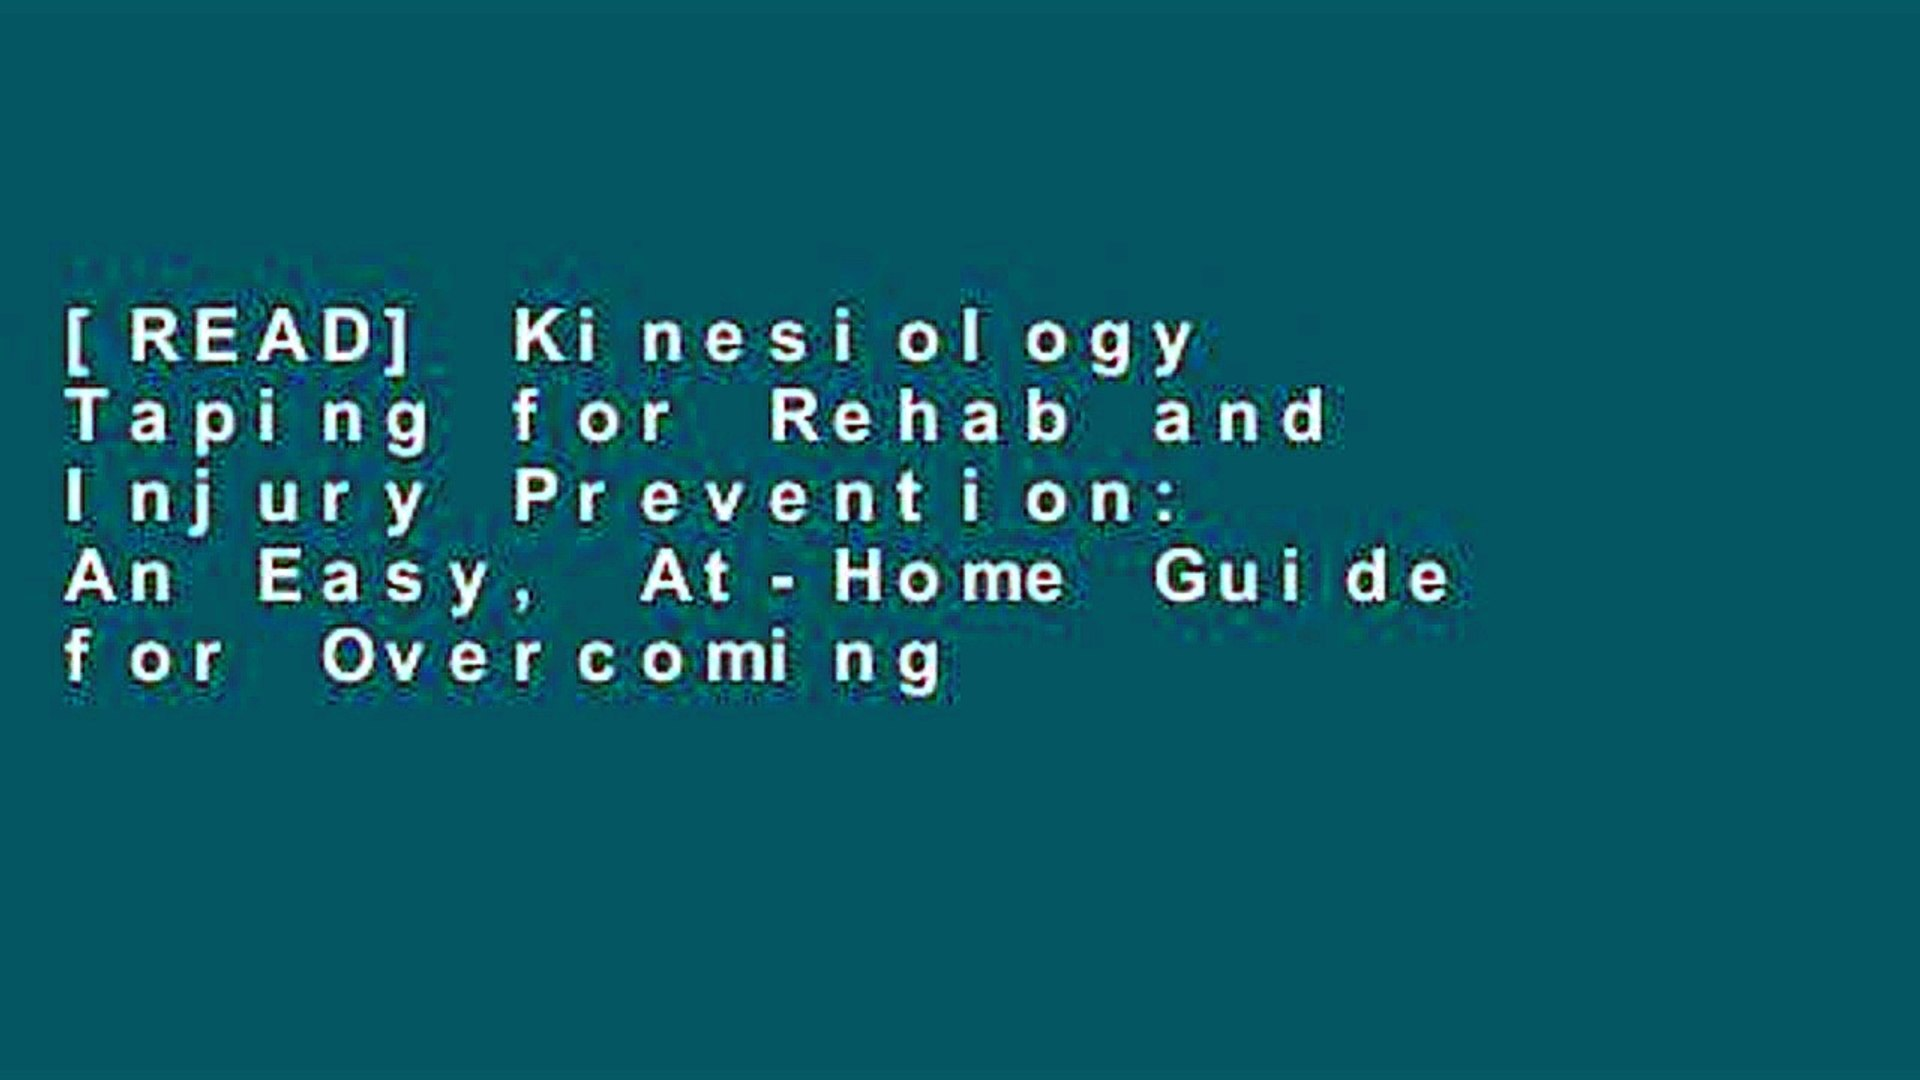 READ] Kinesiology Taping for Rehab and Injury Prevention An Easy 1920x1080